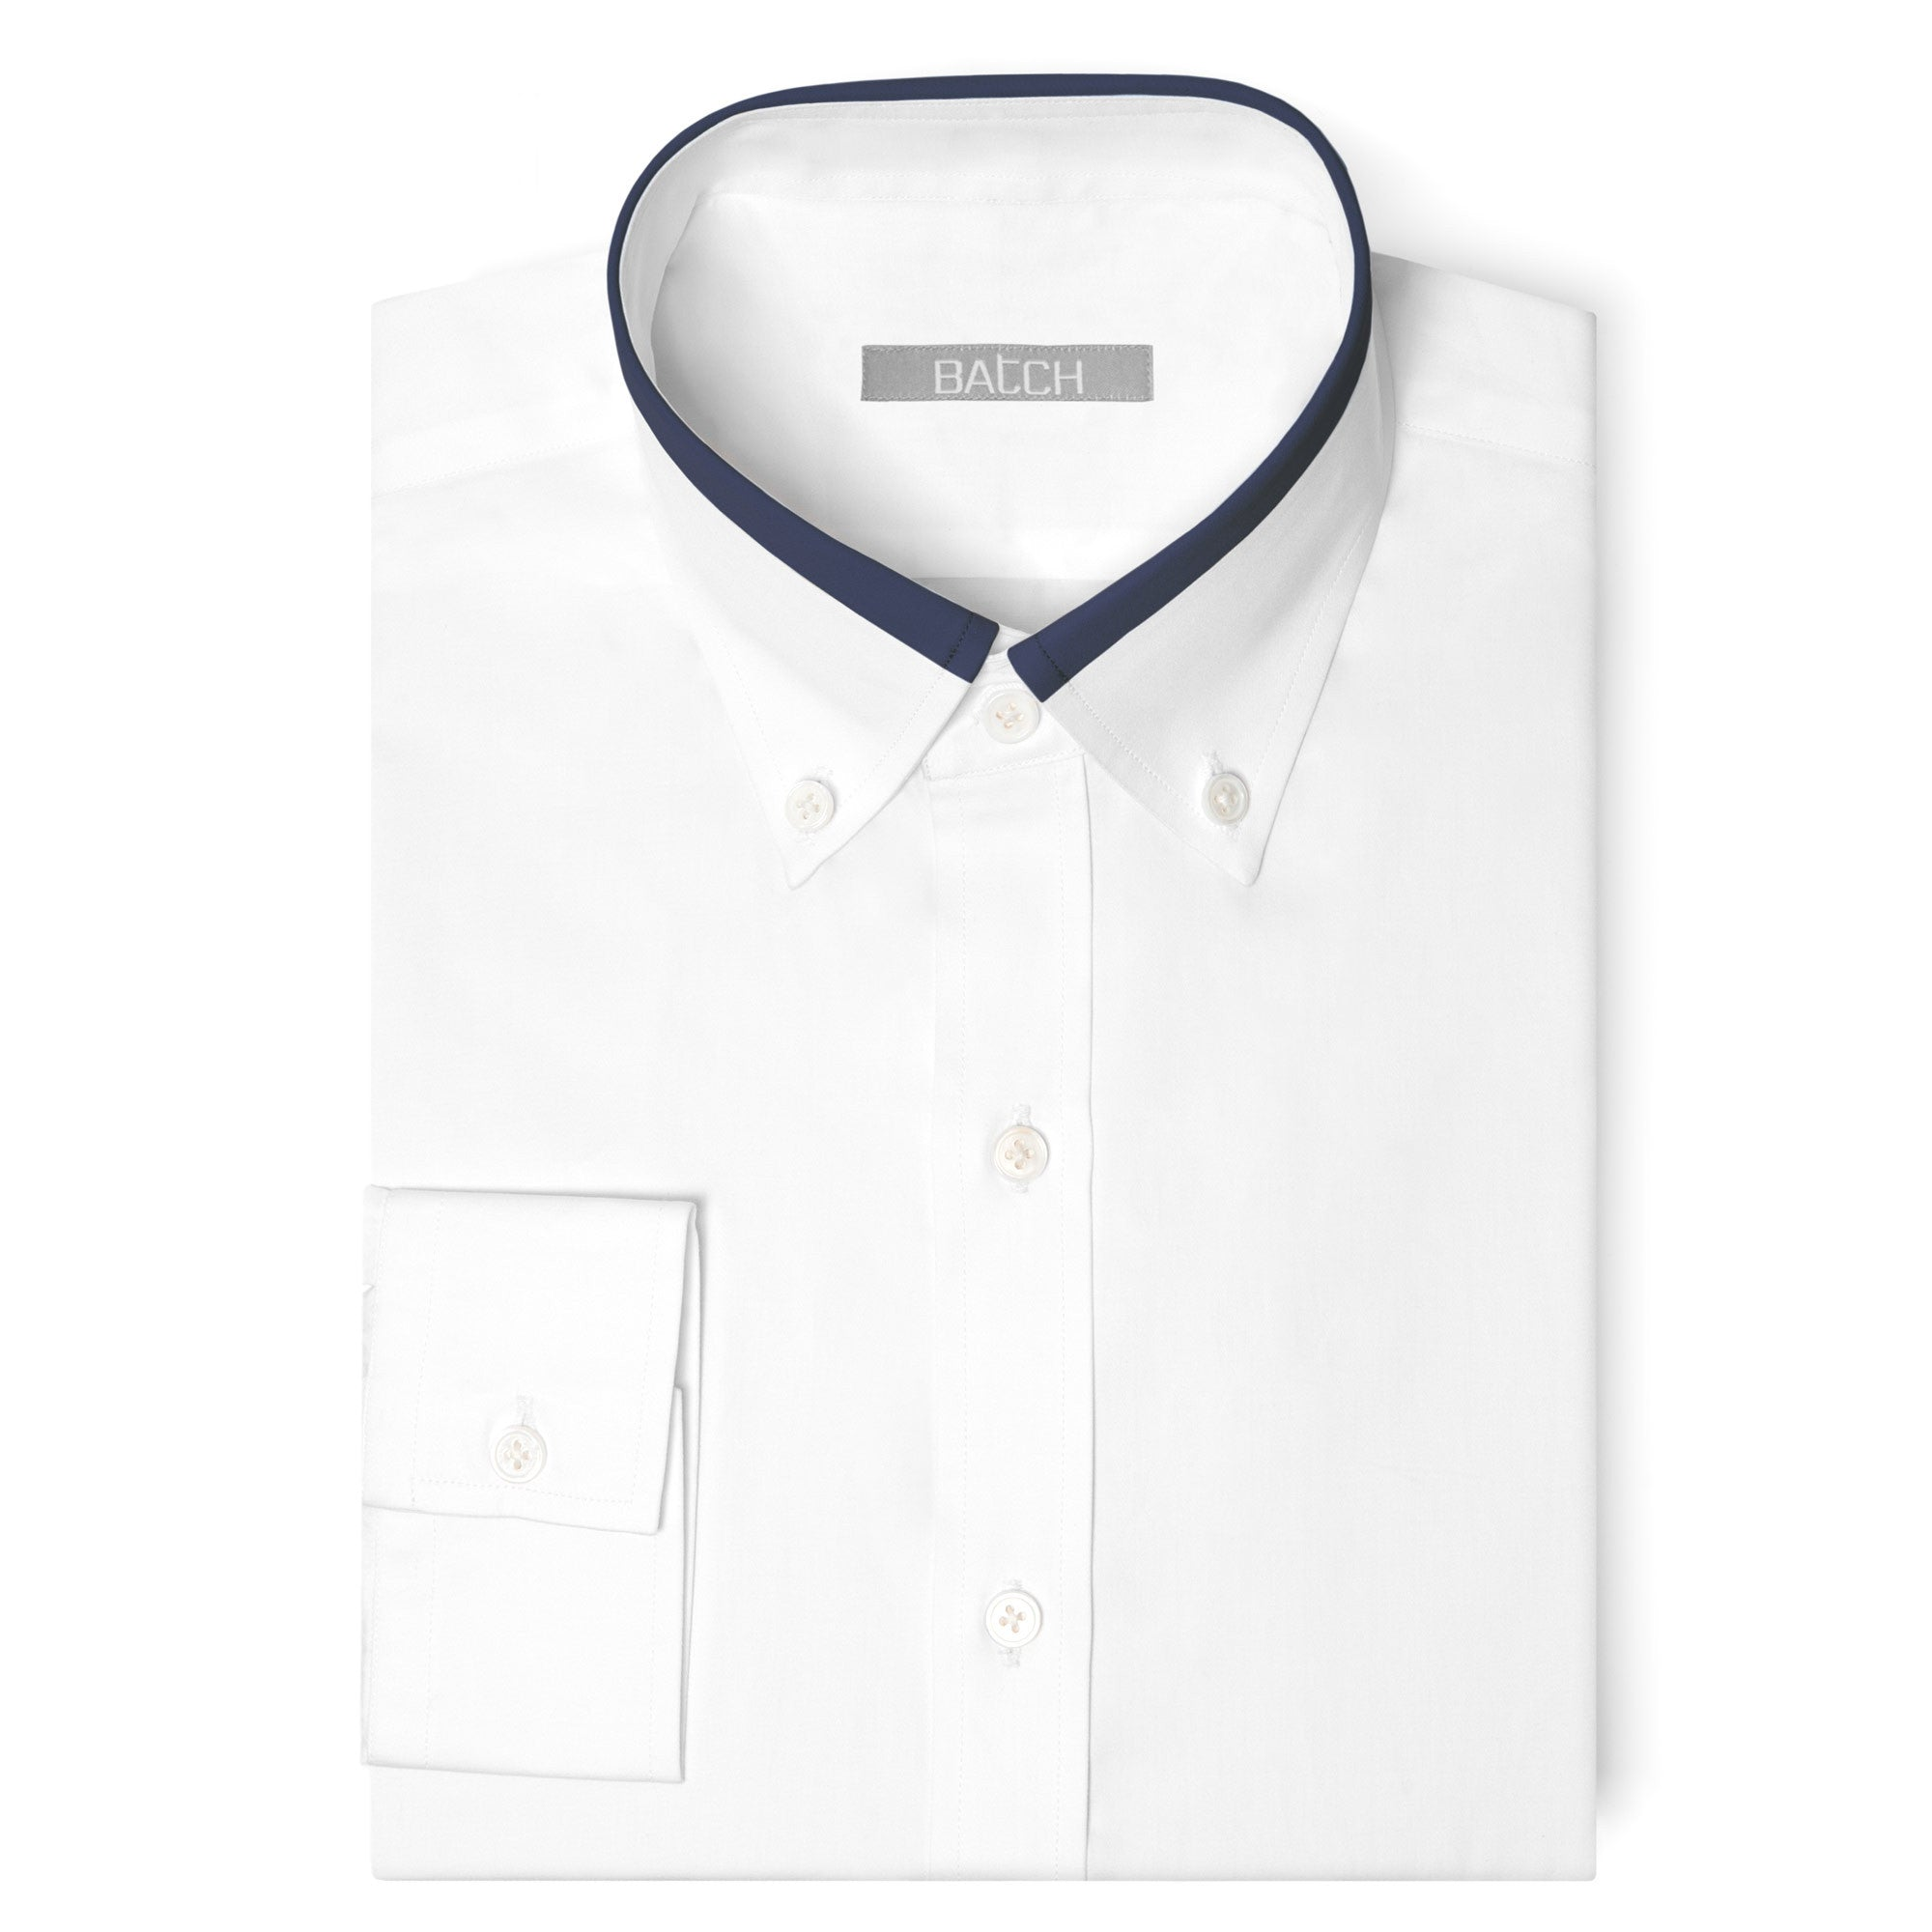 White / Navy Contrast Collar Shirt